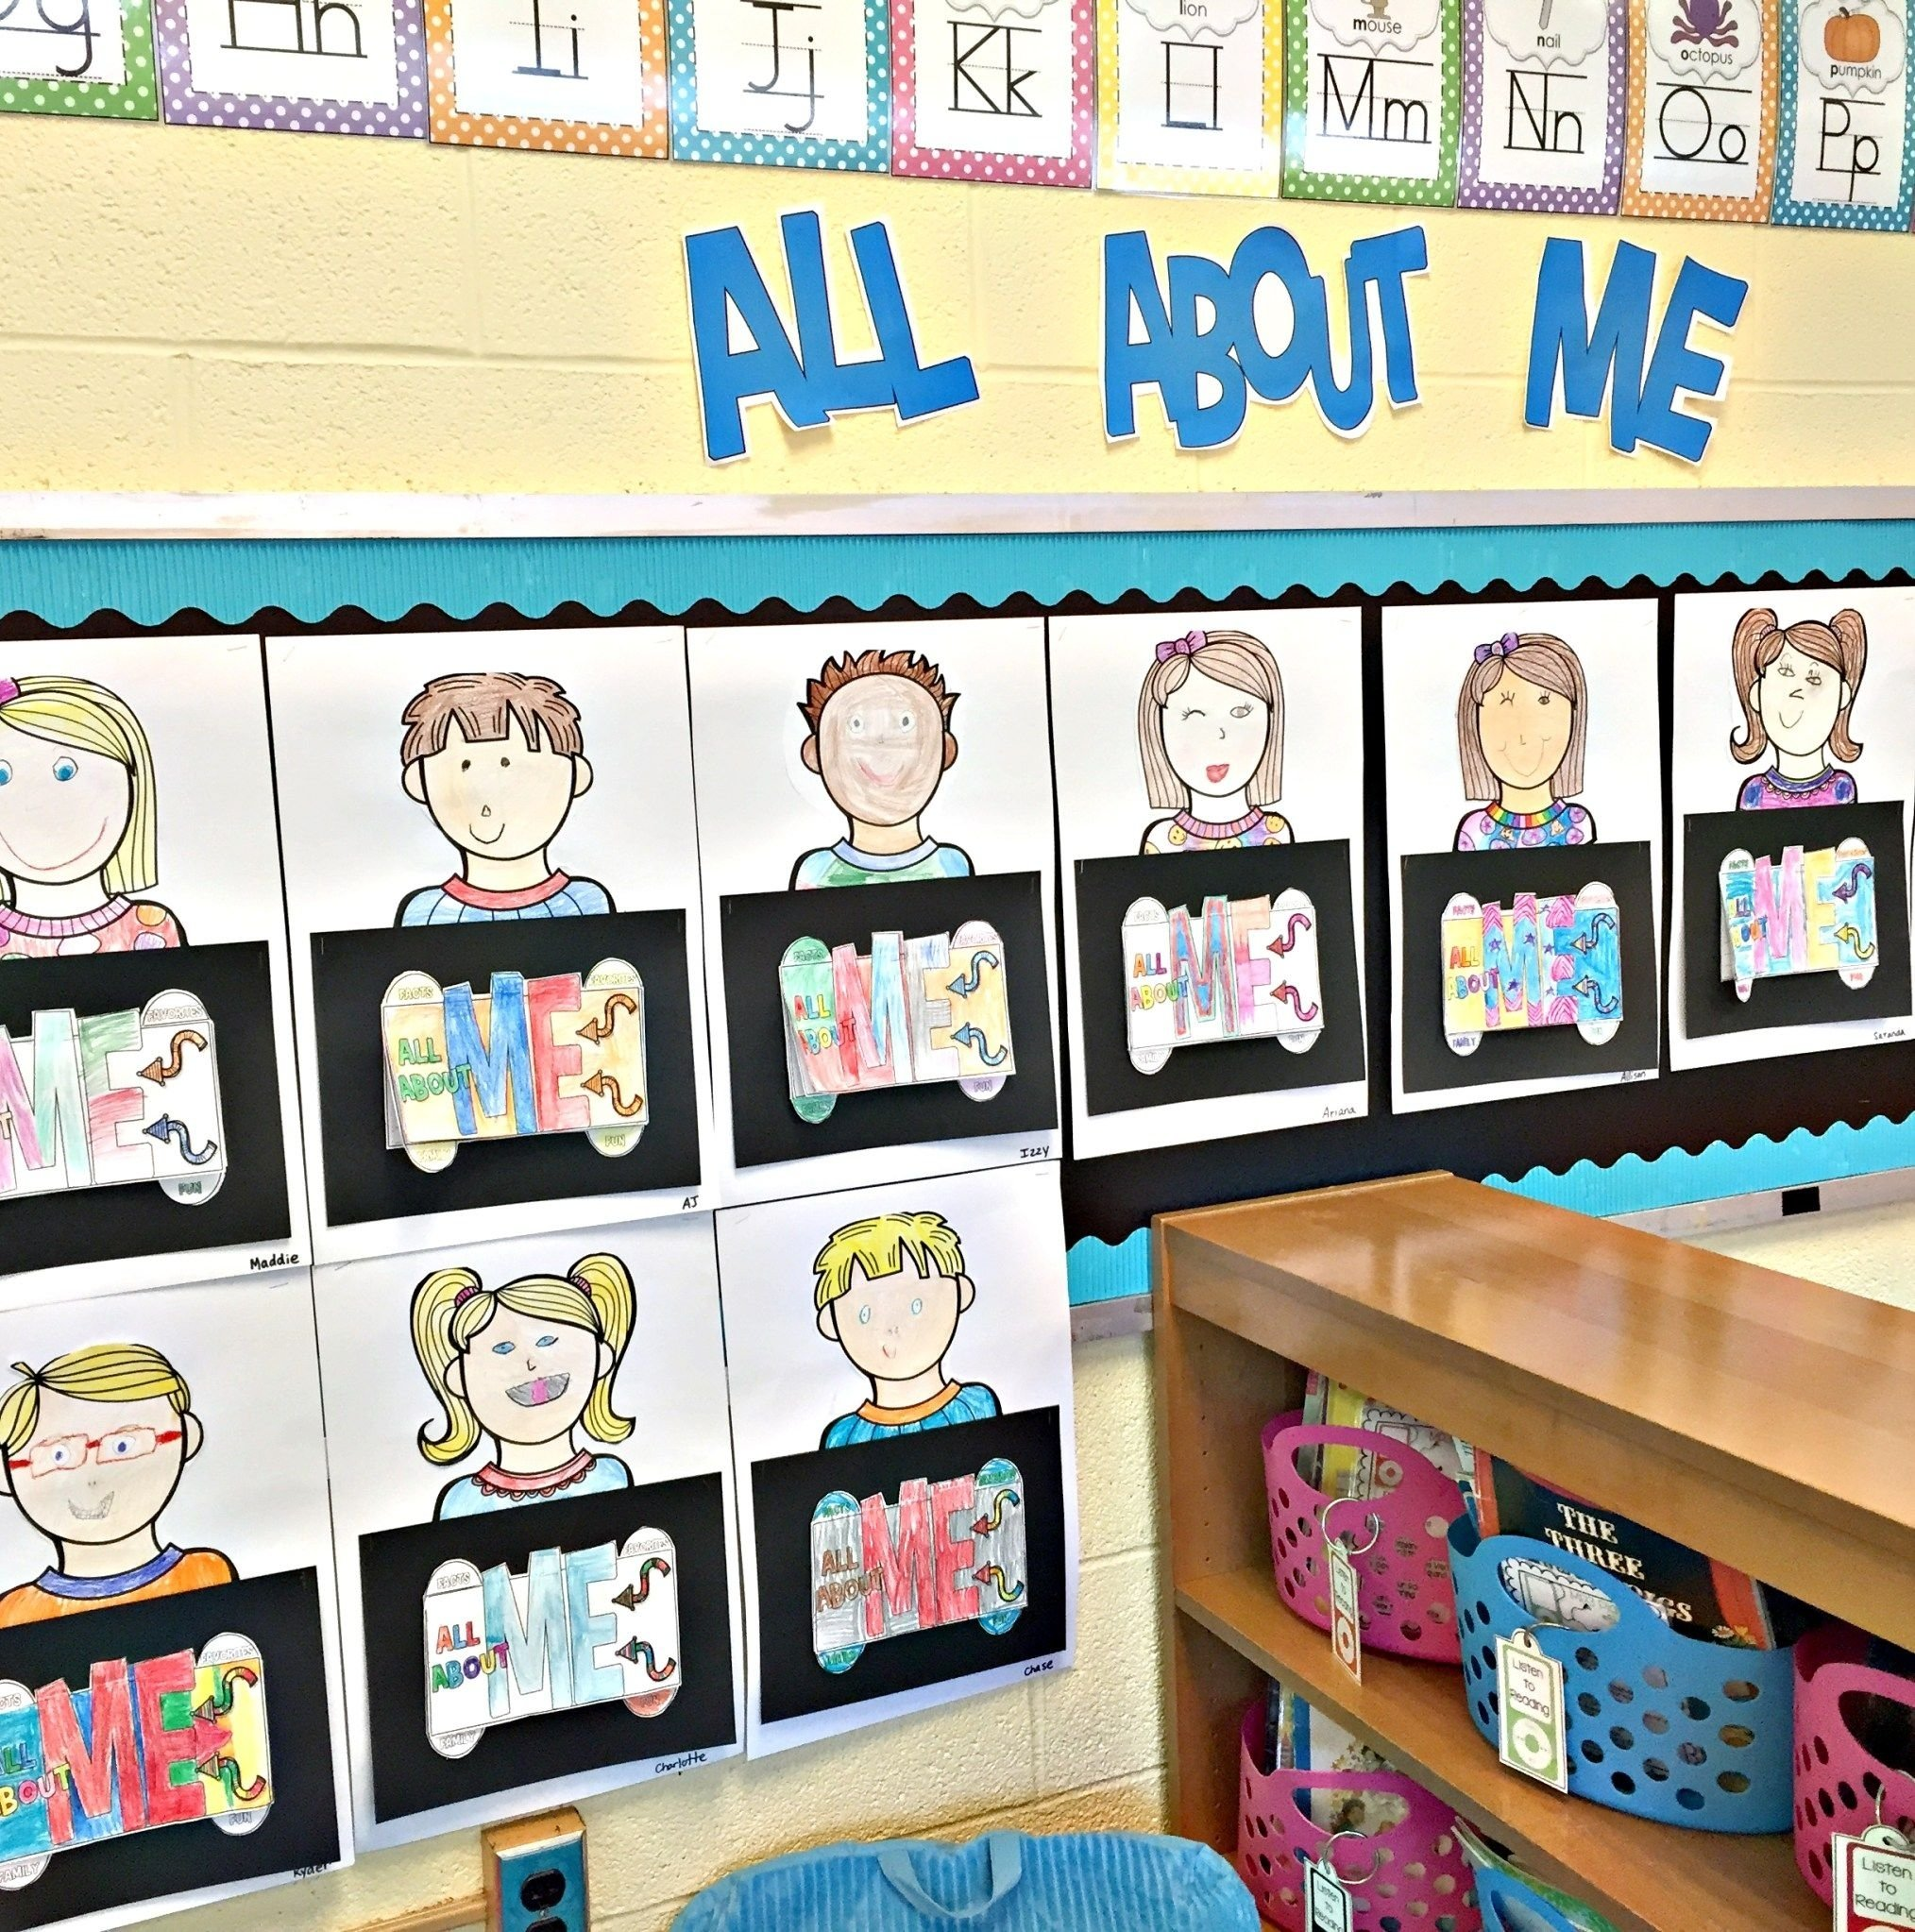 10 Most Recommended All About Me Bulletin Board Ideas all about me project back to school bulletin board display 2 2020